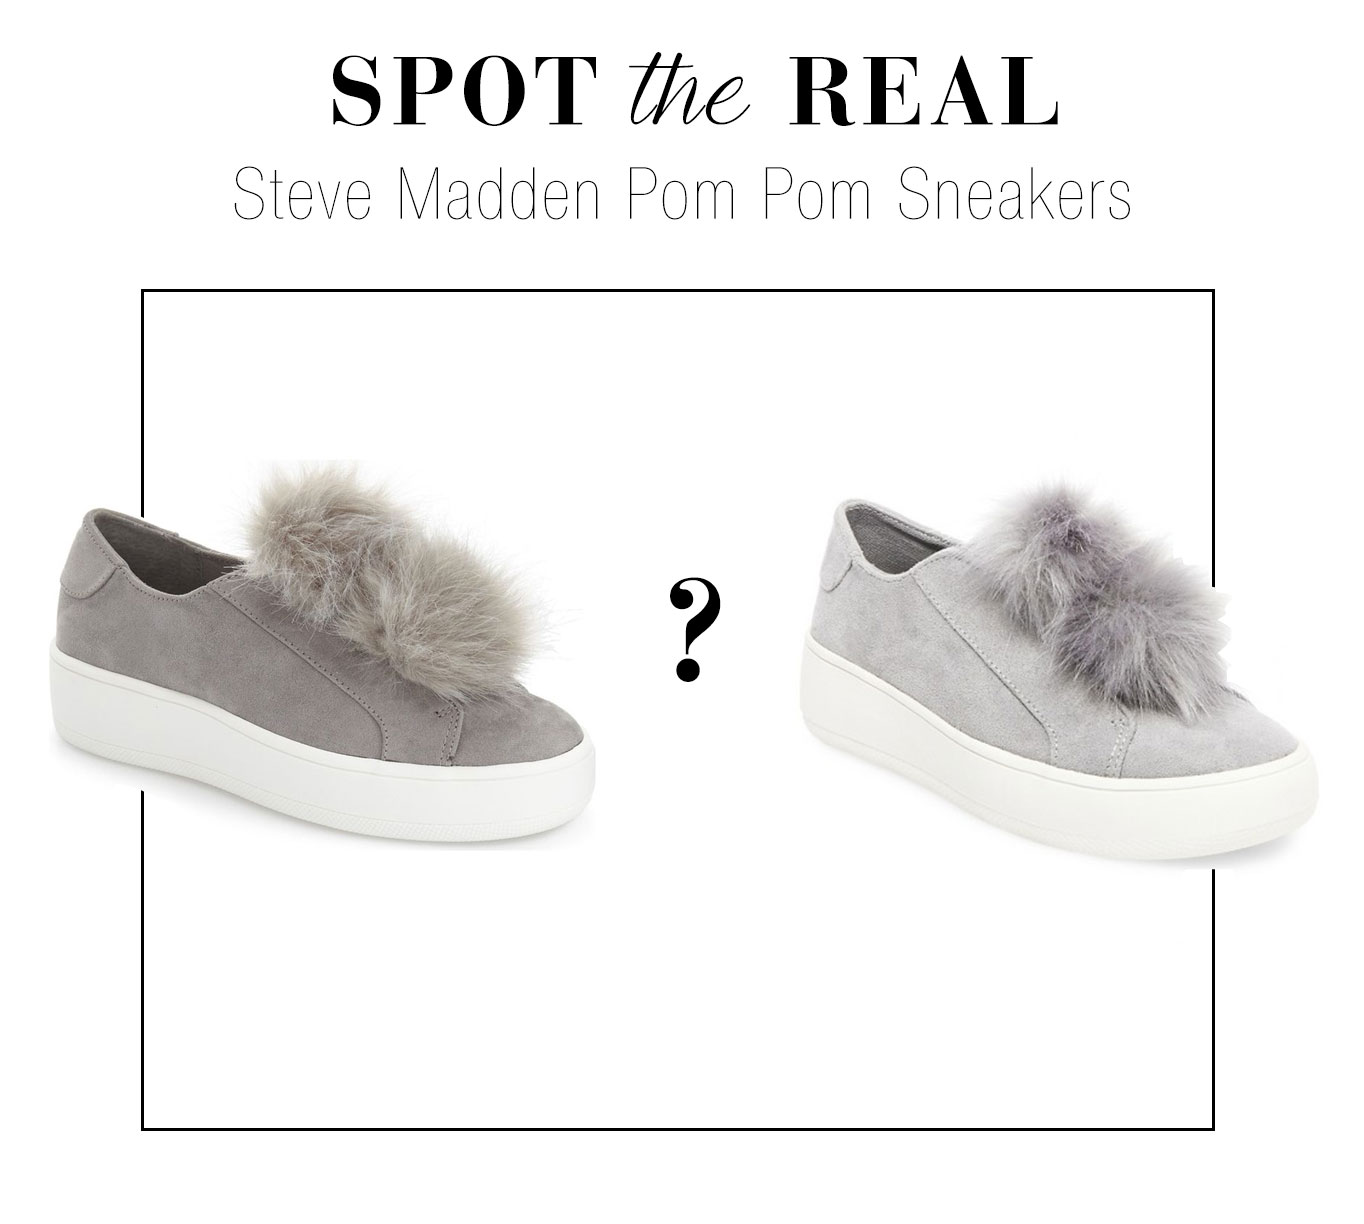 Can you guess which are the real Steve Madden pom pom sneakers?